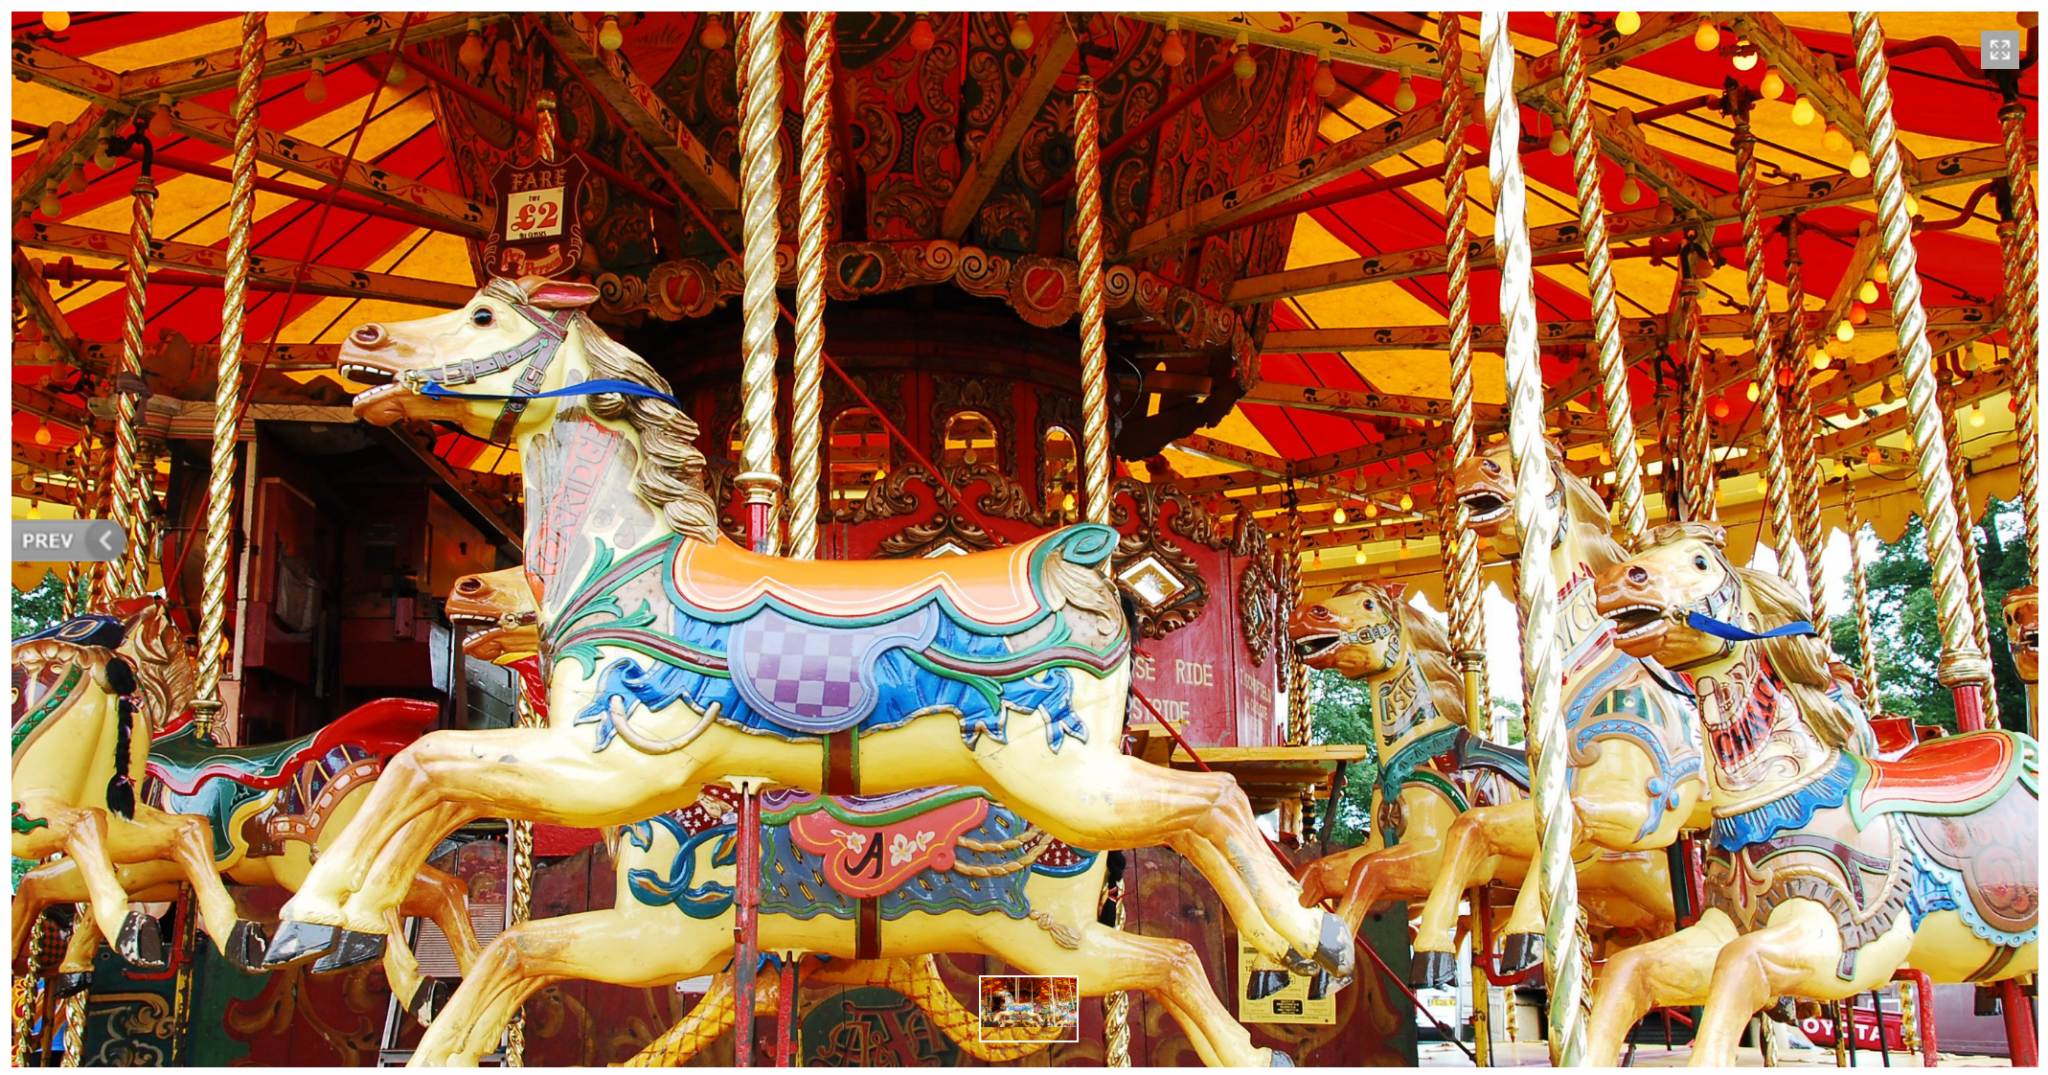 The Merry-Go-Round Emotion of Change